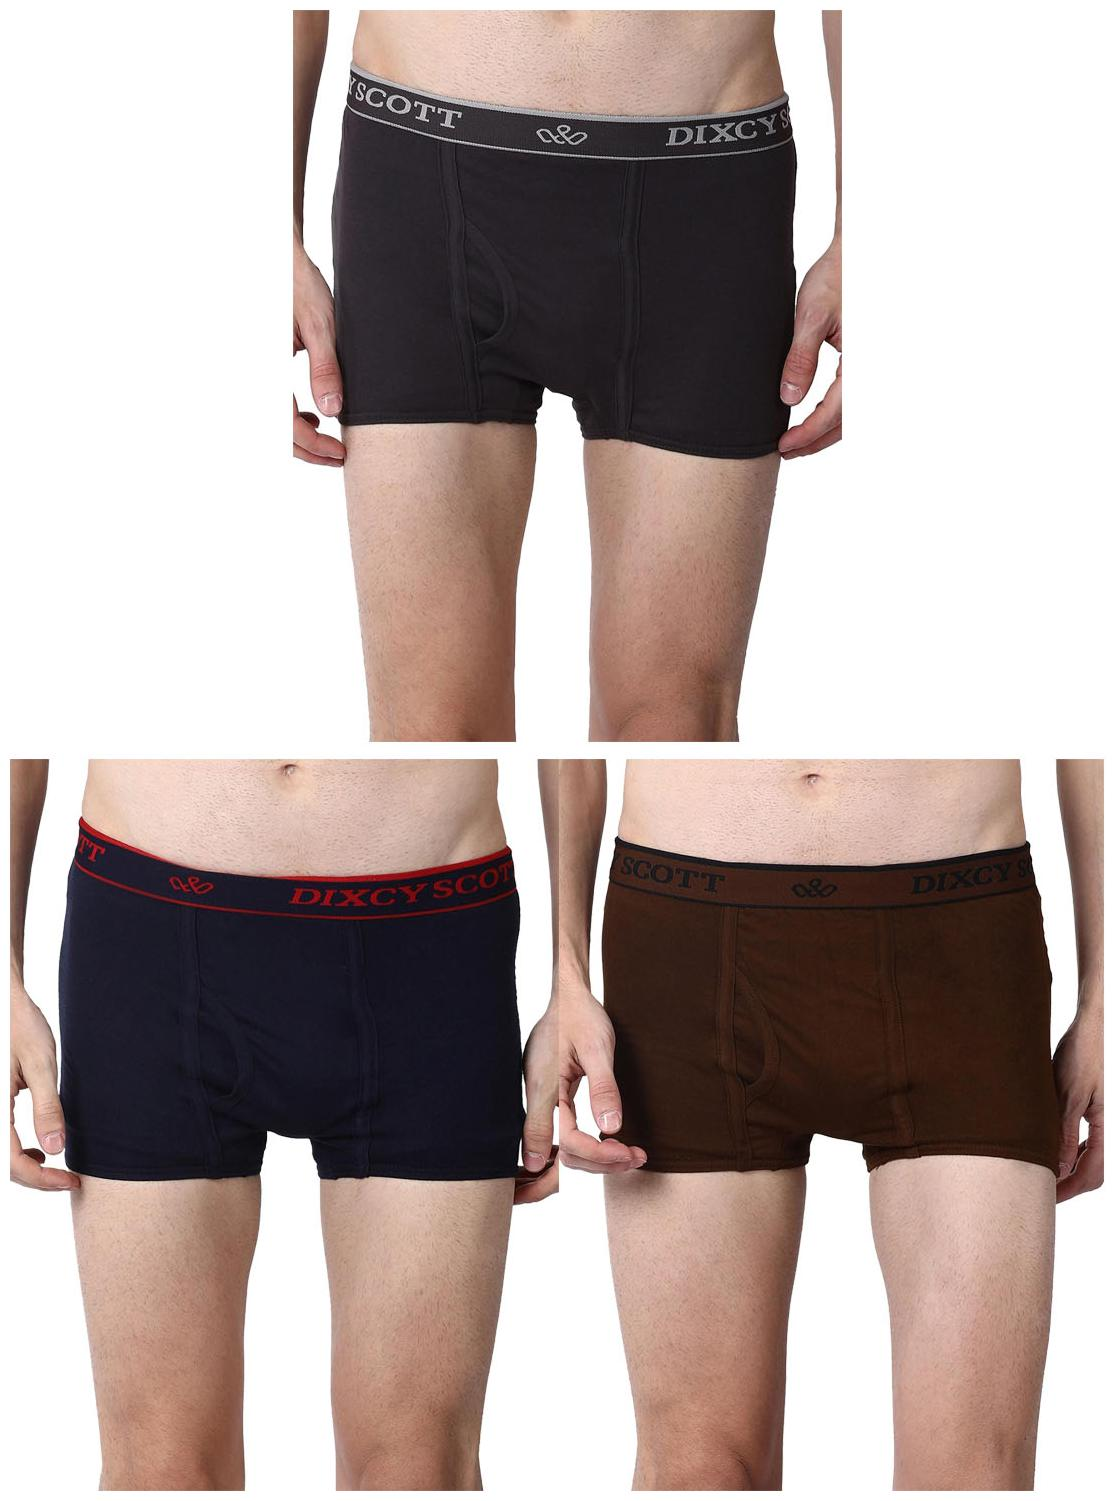 DIXCY SCOTT Solid Trunks   Assorted ,Pack Of 3 by Kuku Ki Dukaan